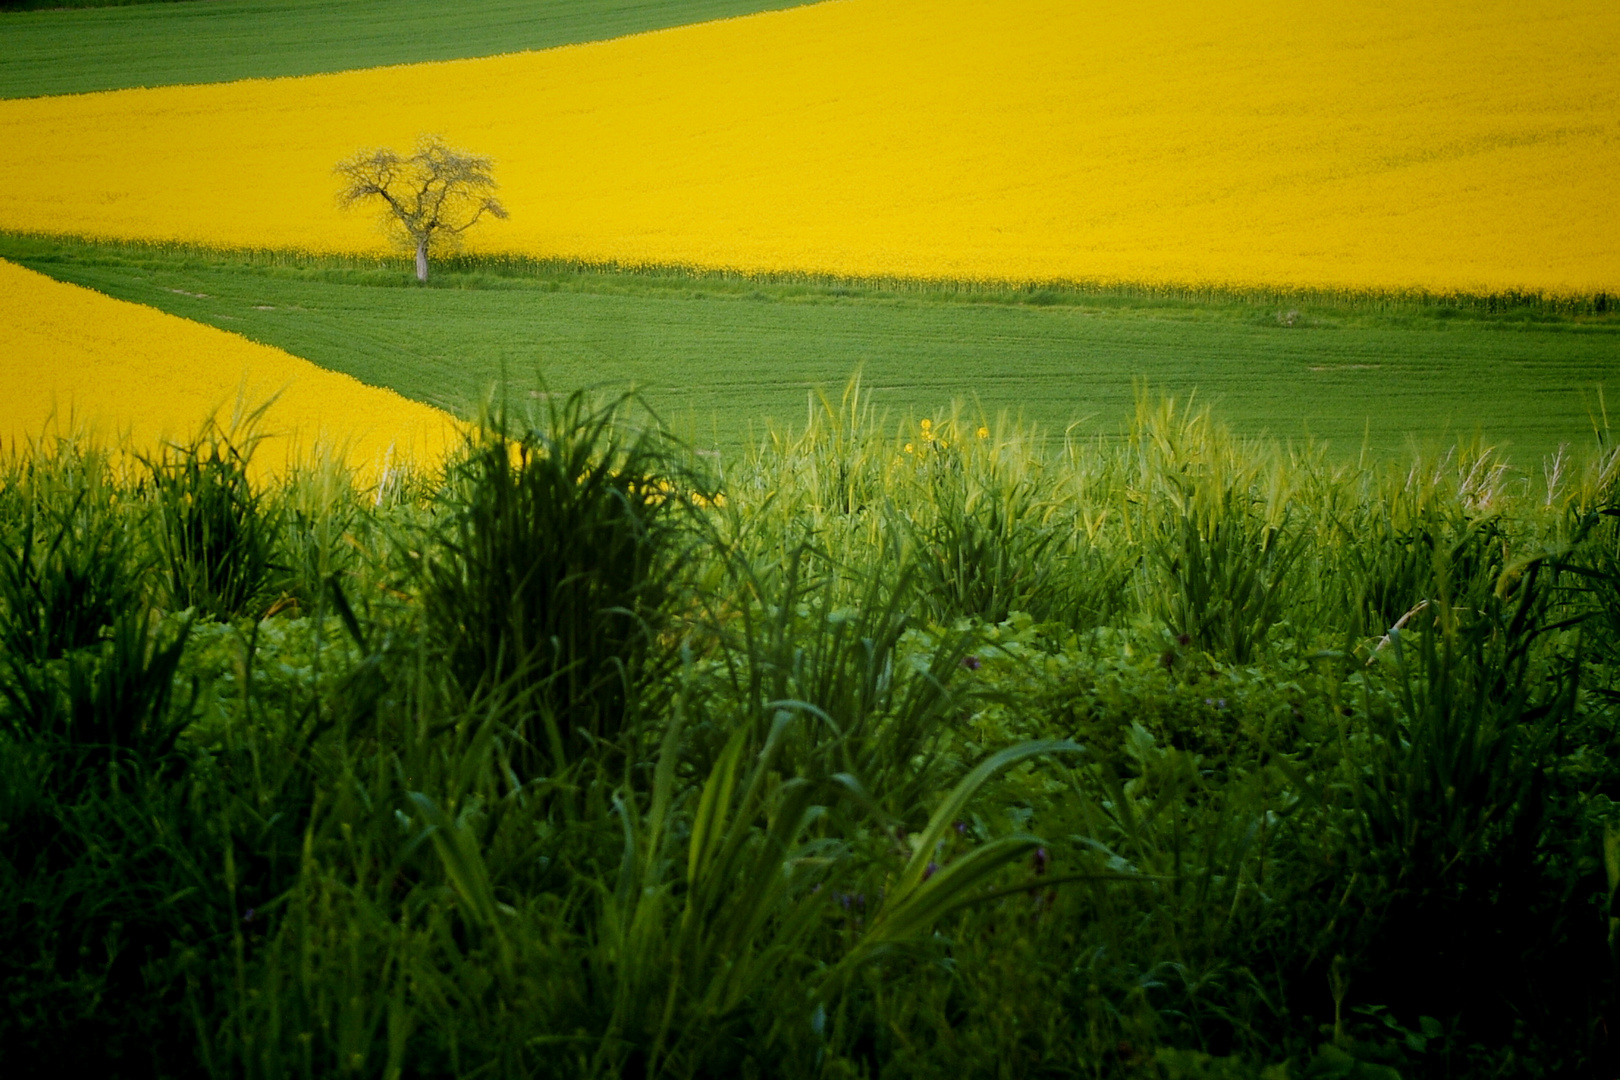 into the yellow & green